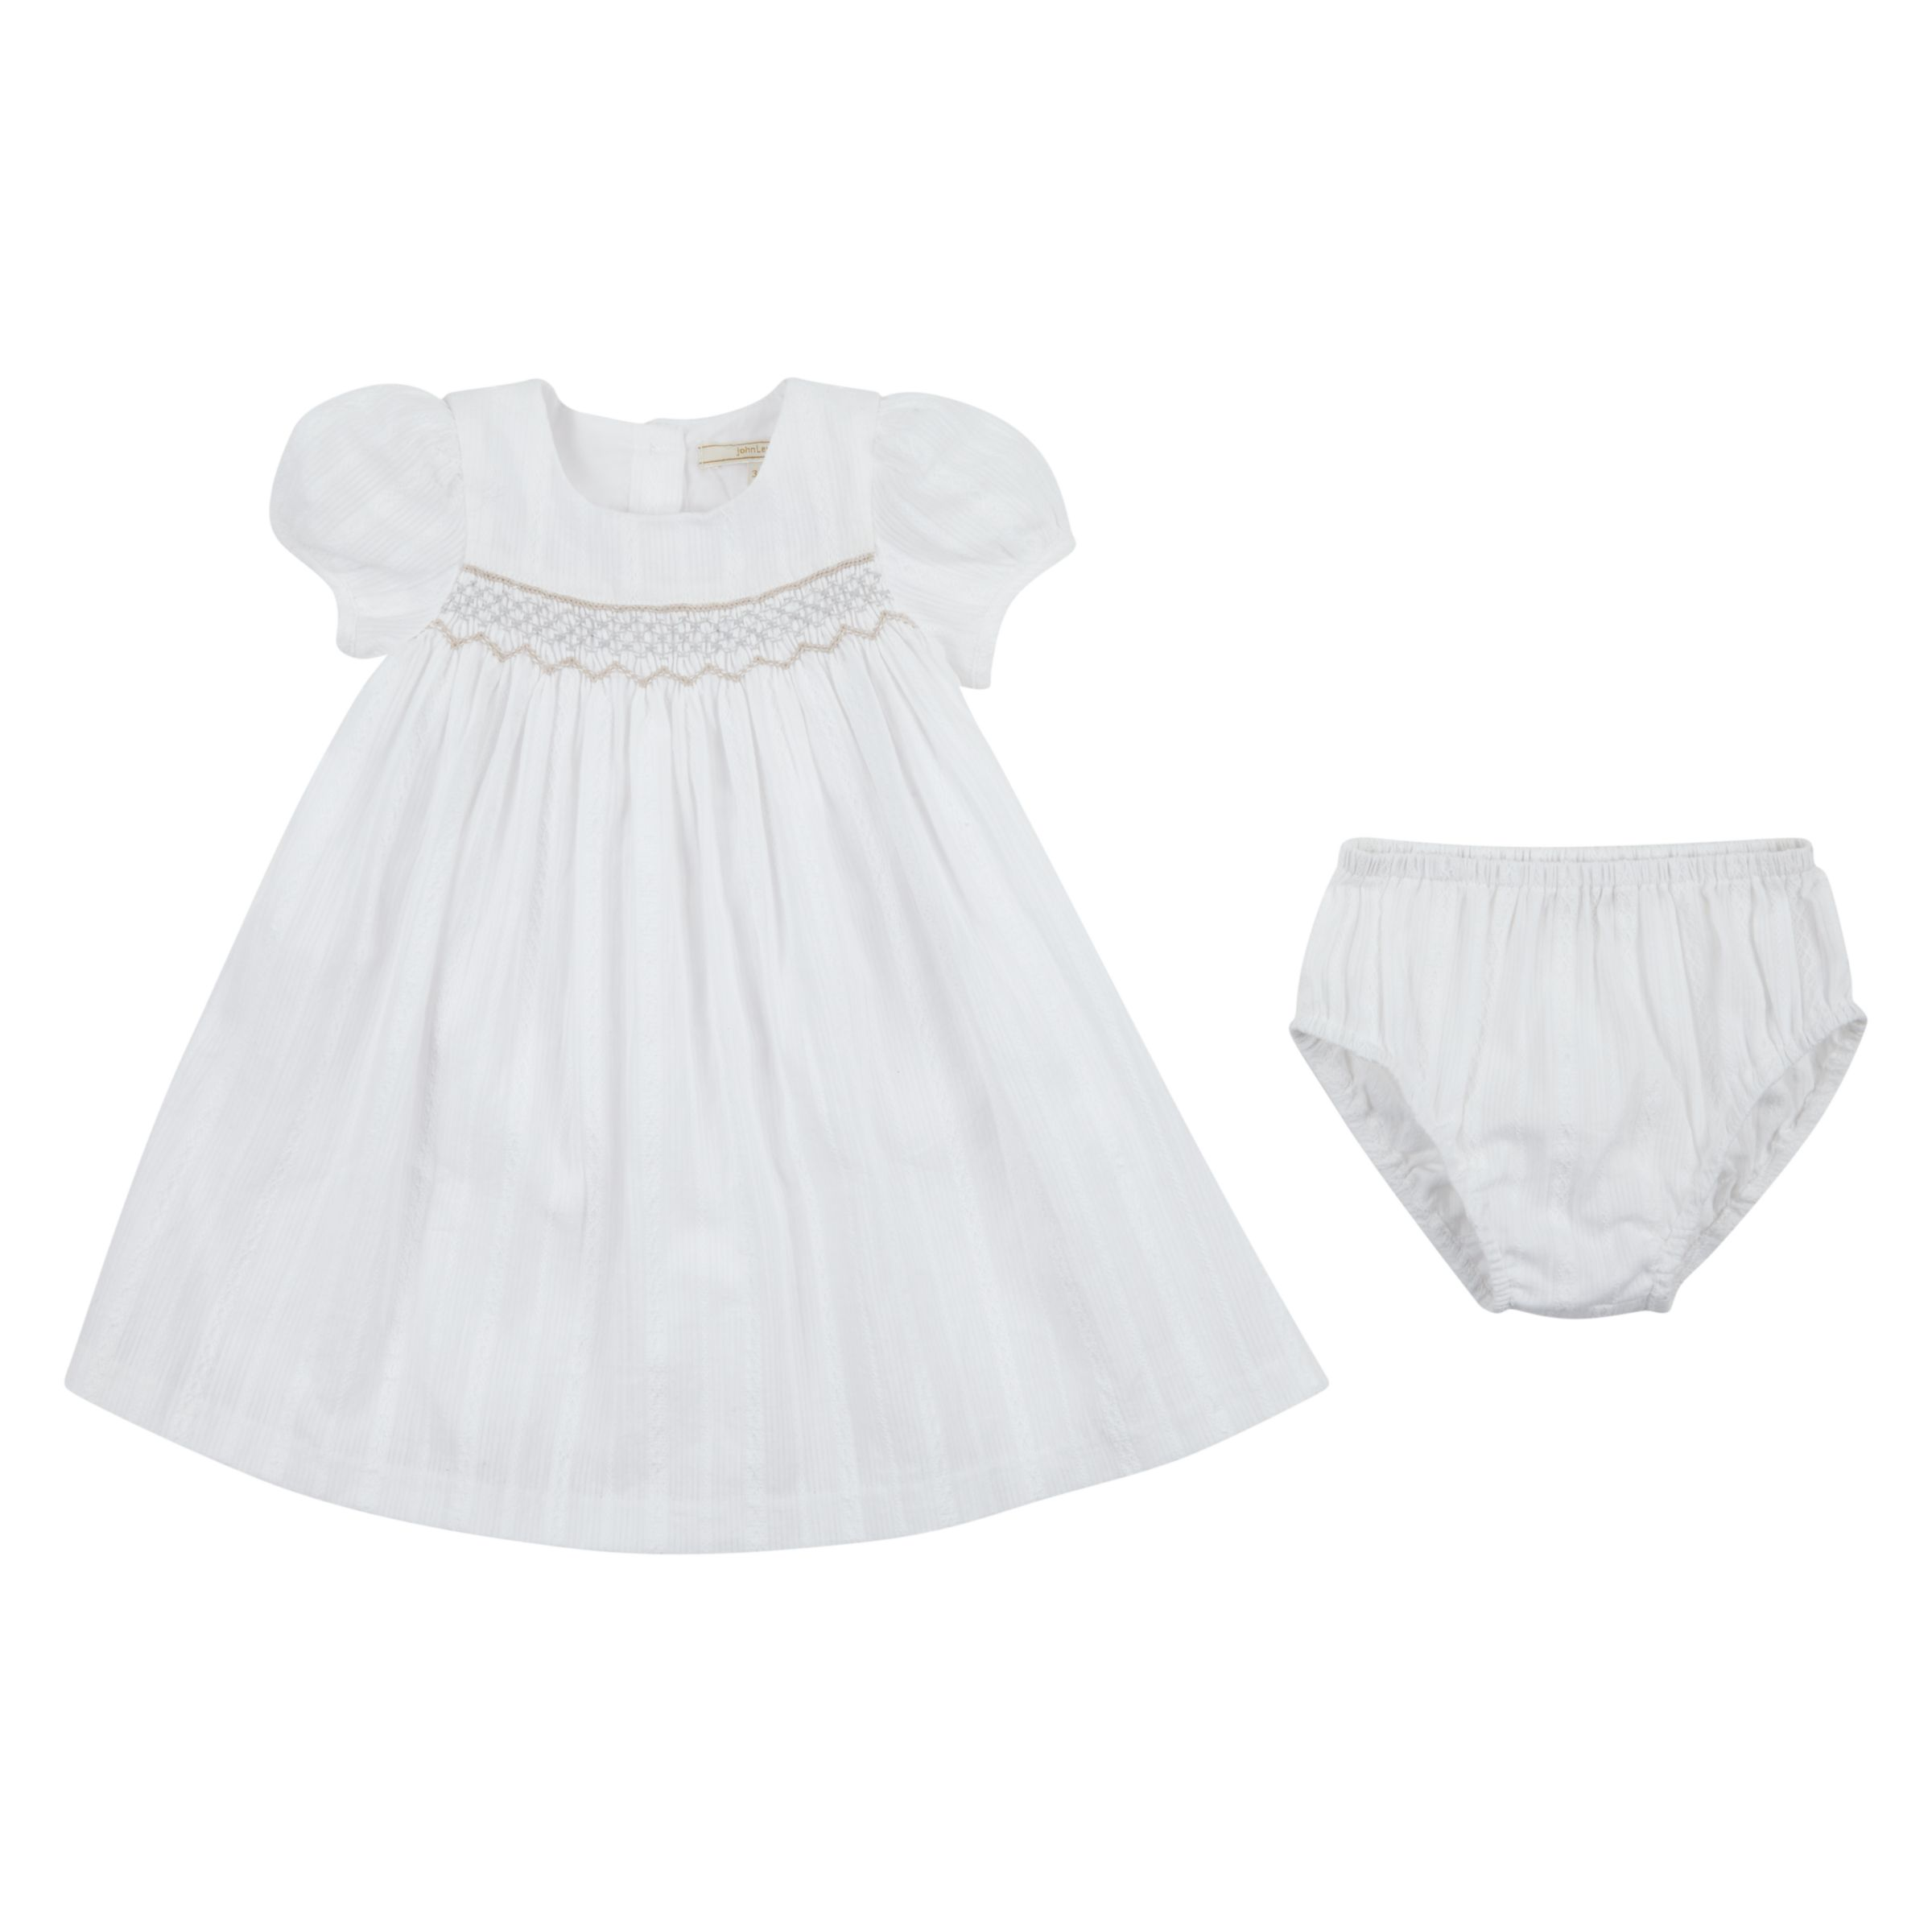 John Lewis Heirloom Collection John Lewis Heirloom Collection Baby Woven Smock Dress and Knickers Set, White